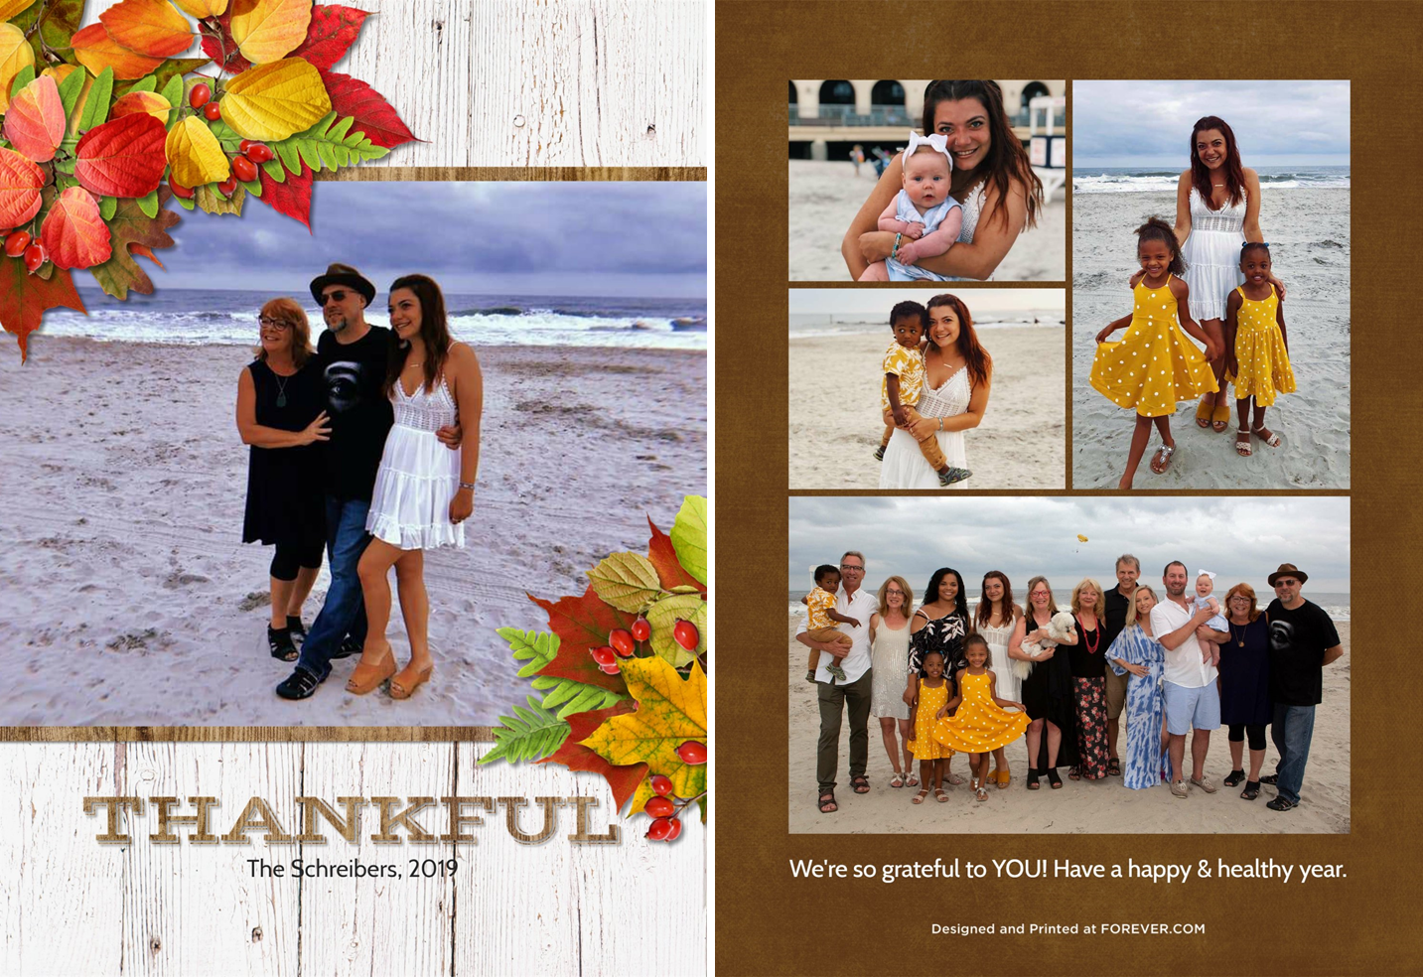 My Thanksgiving card, made in  FOREVER Design & Print.